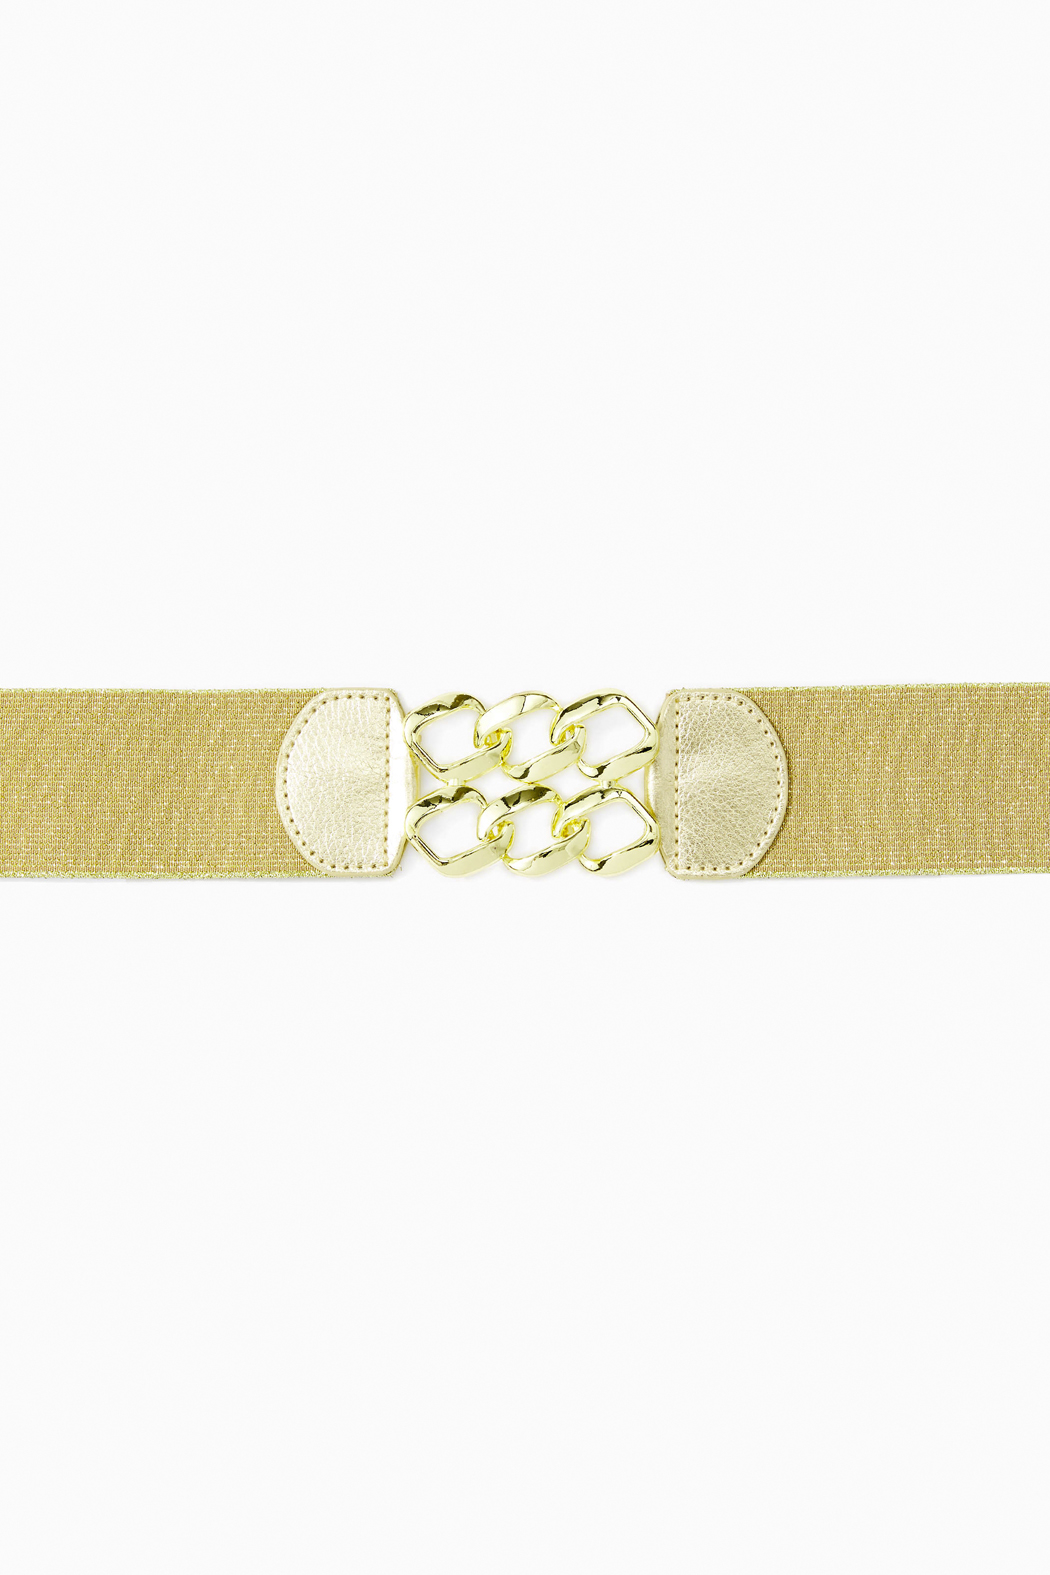 Lilly Pulitzer Bianca Stretch Belt - Front Full Image